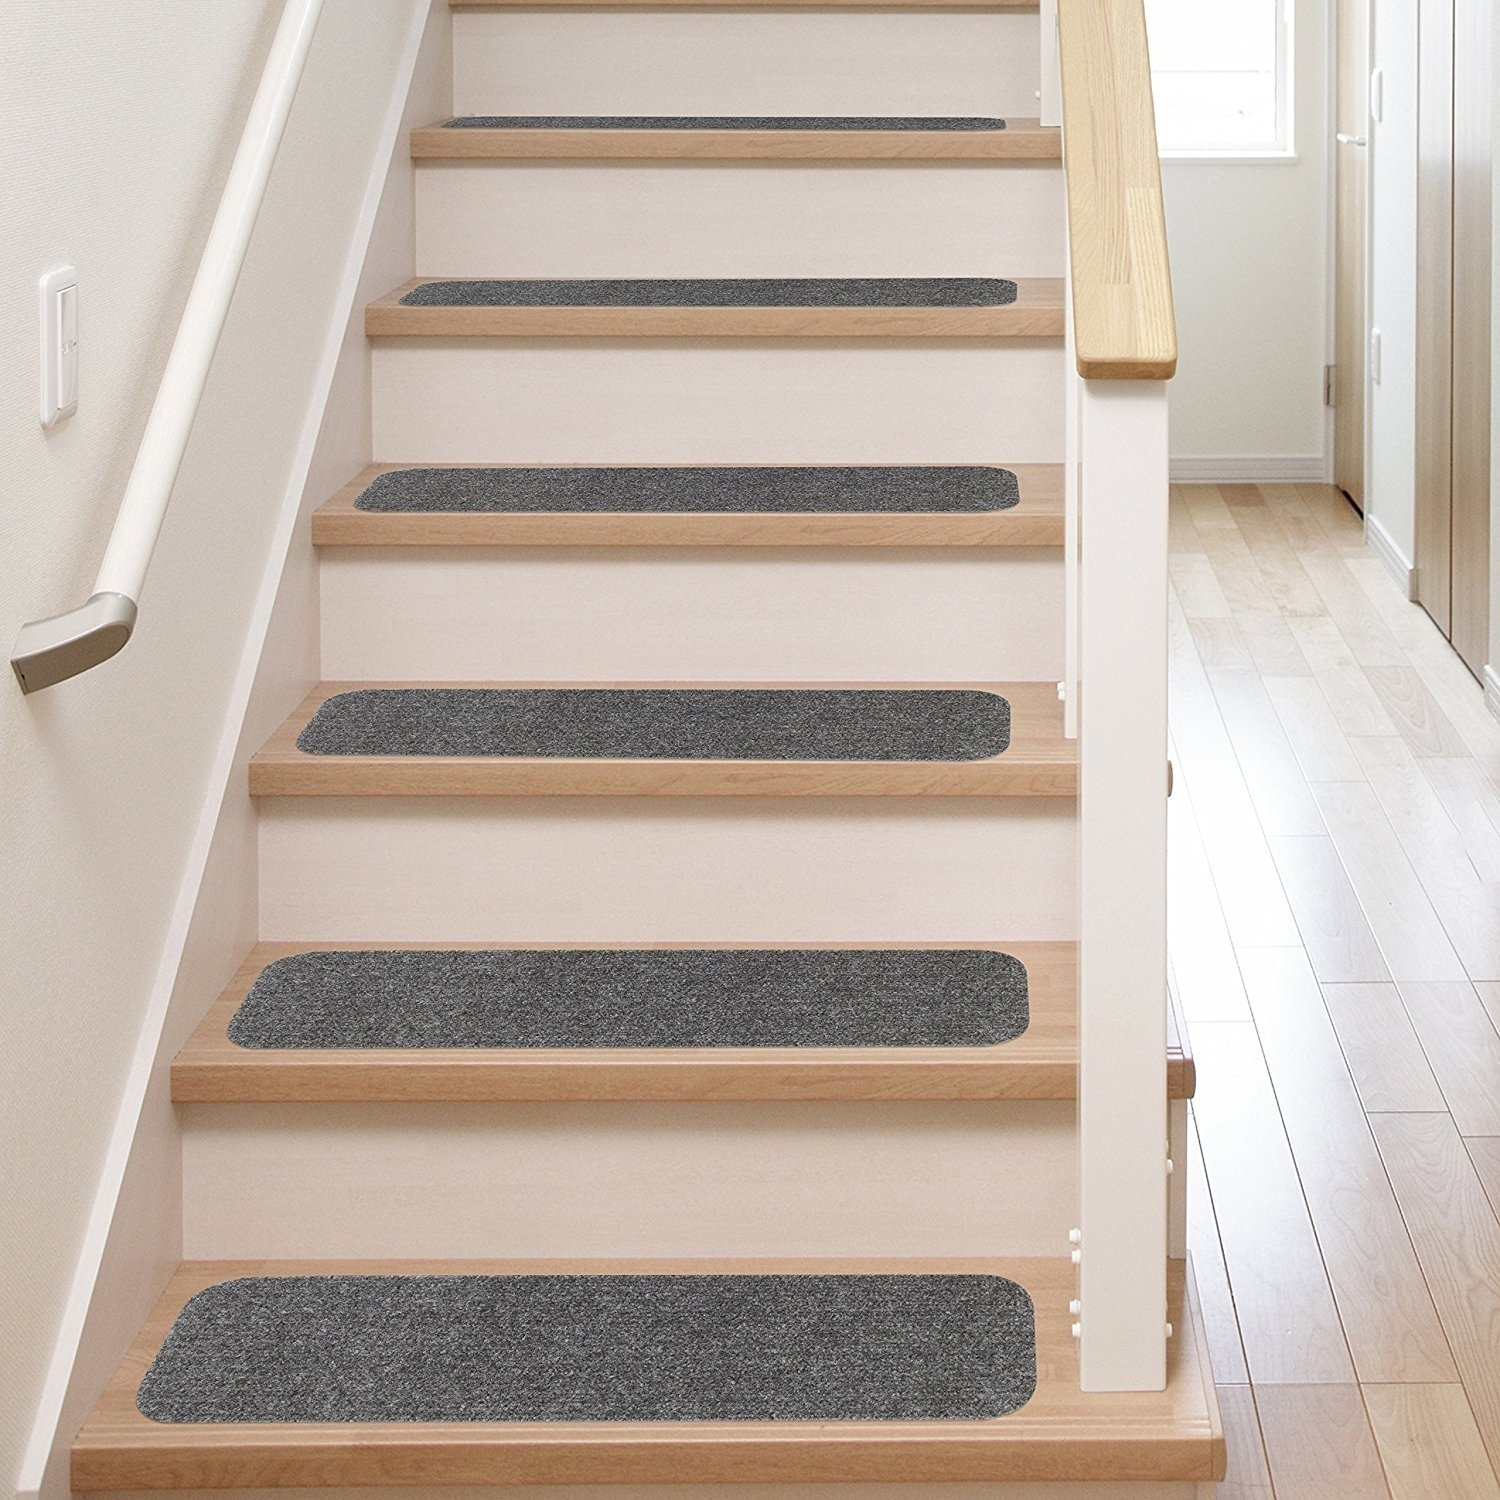 10 Gorgeous Ideas For Stairs Instead Of Carpet stair carpet treads installation stairs decoration stair carpet 2021